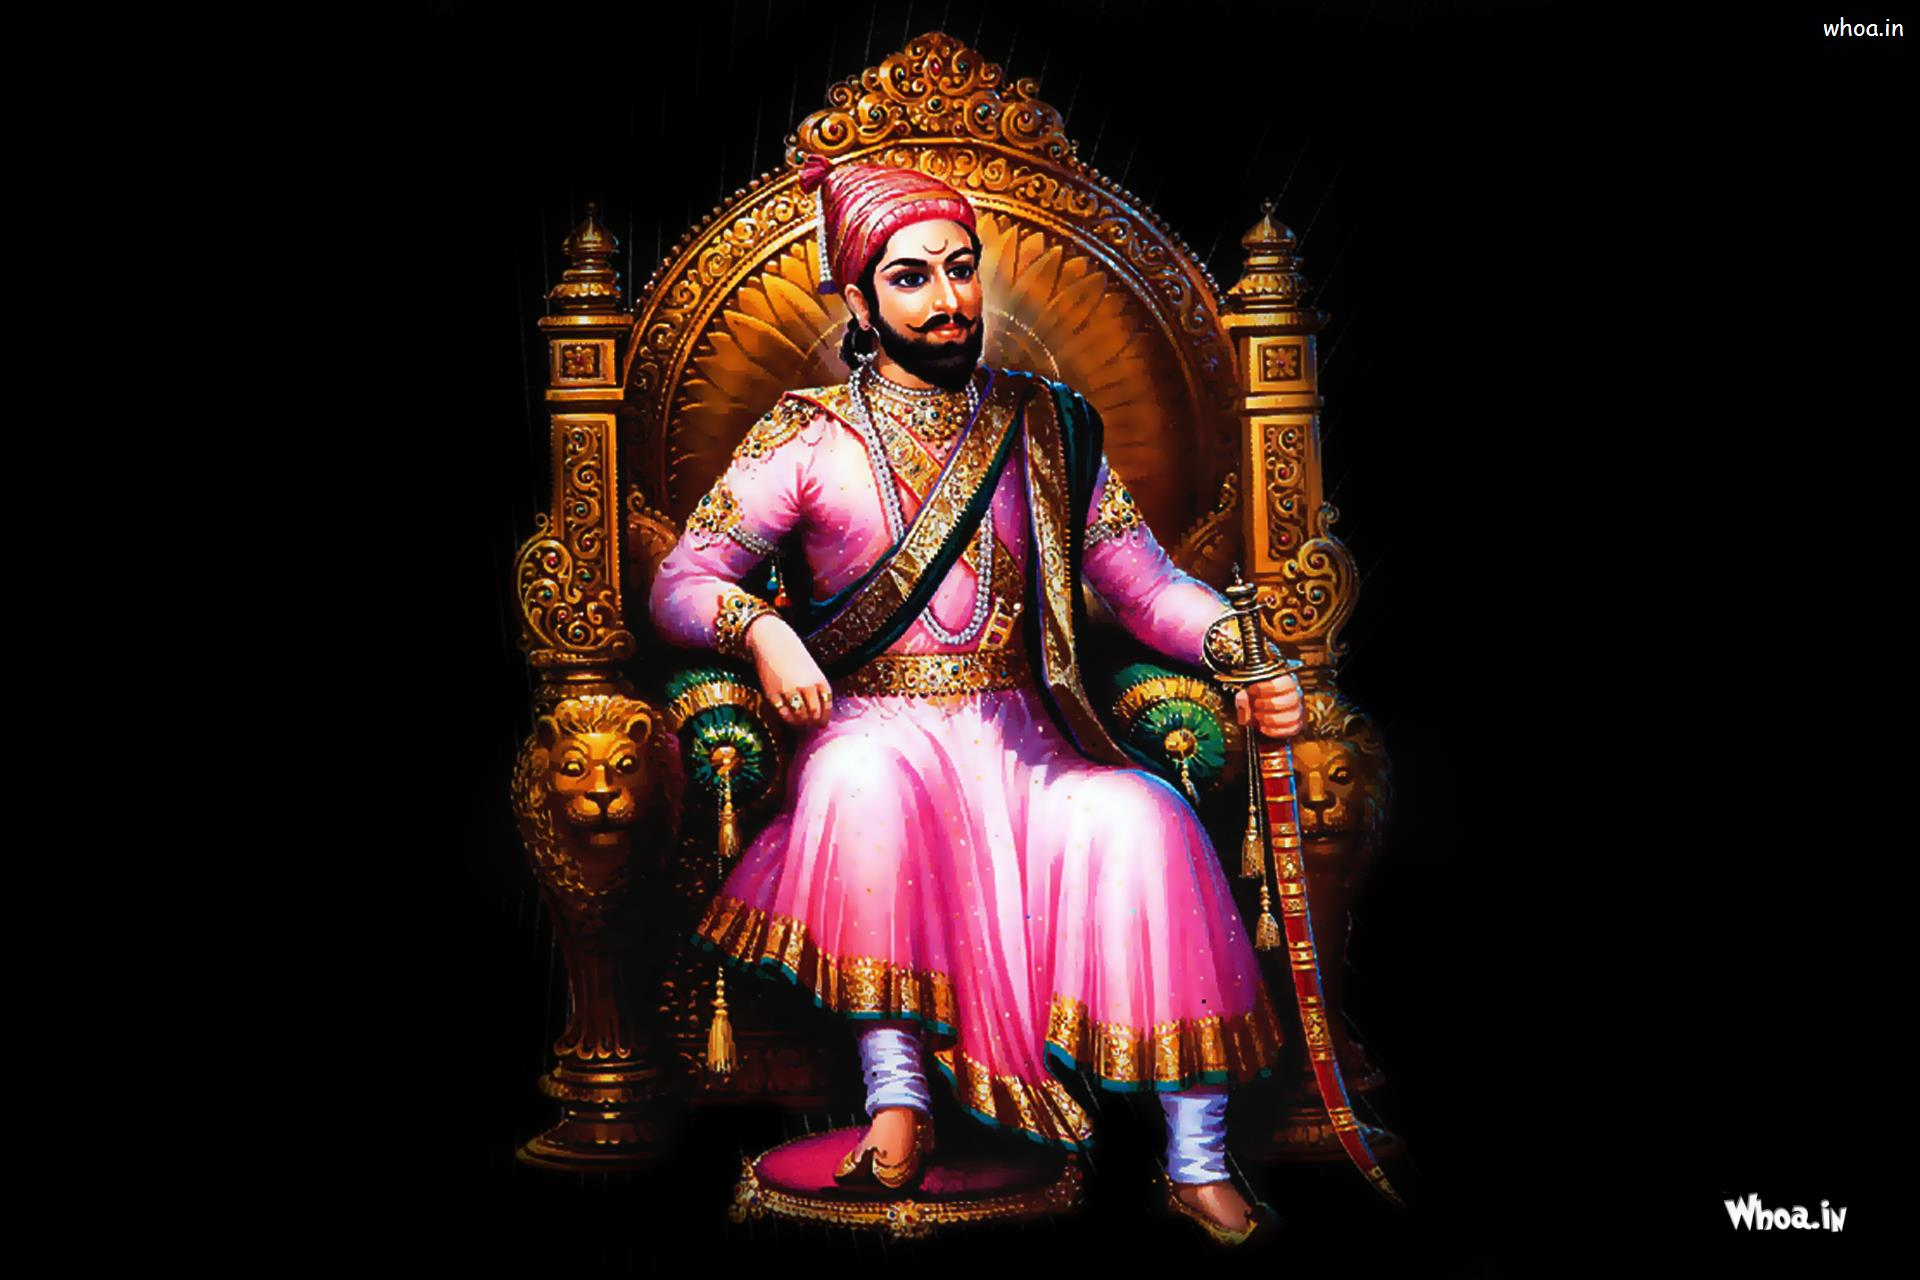 maharaja shivaji sitting wirh dark background painting hd wallpaper